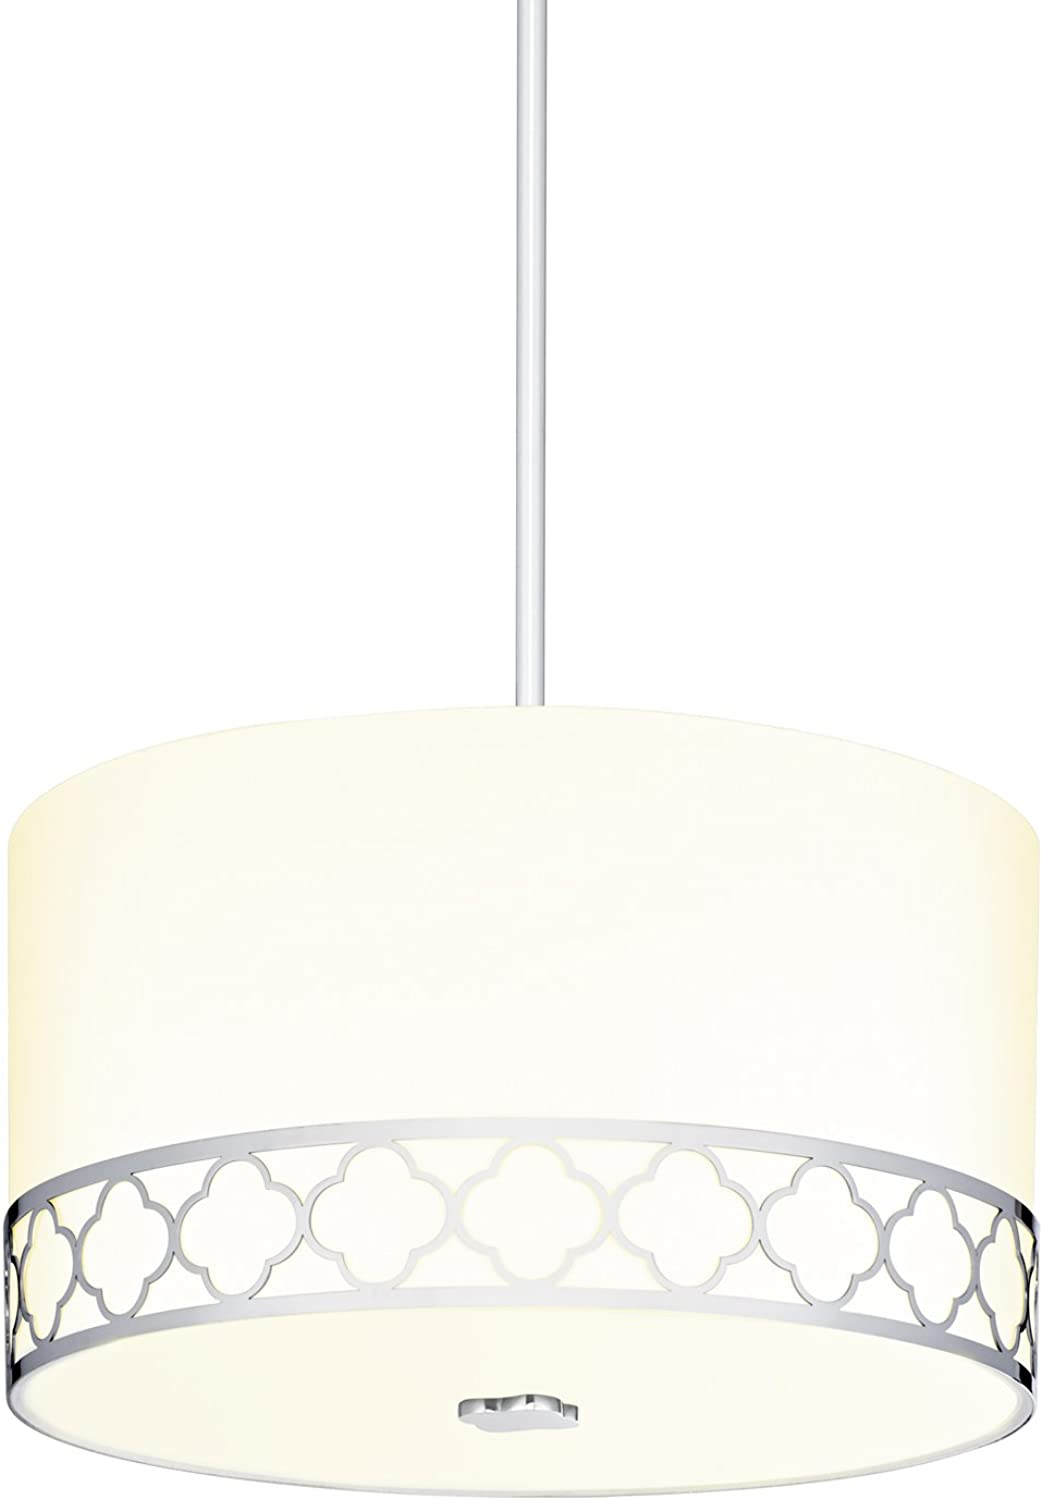 Fabric Linen Drum Pendant Light - 14  Inch 3-Light Ceiling Fixture with Scalloped Nickel Metal Design and Glass Diffuser